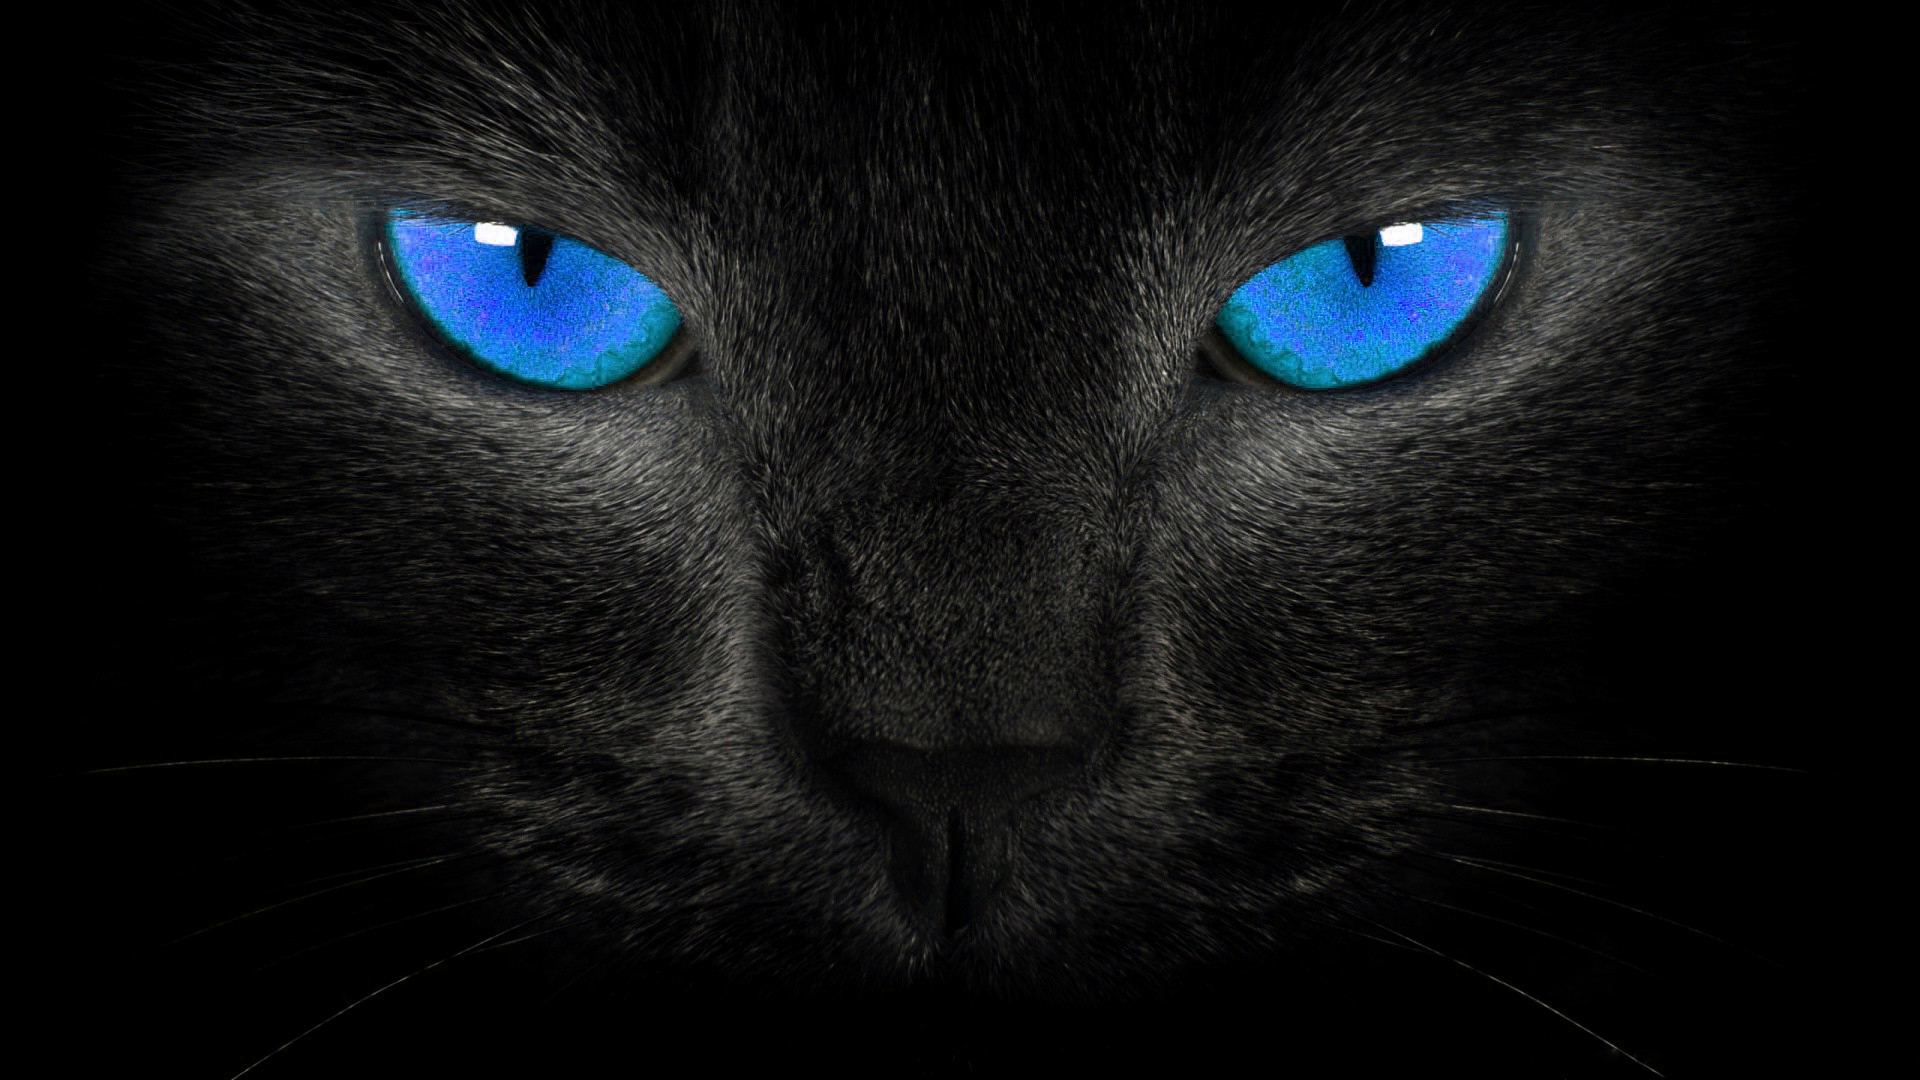 hdcatwallpapersblueeyescatwallpaper  HD Wallpapers 1920x1080